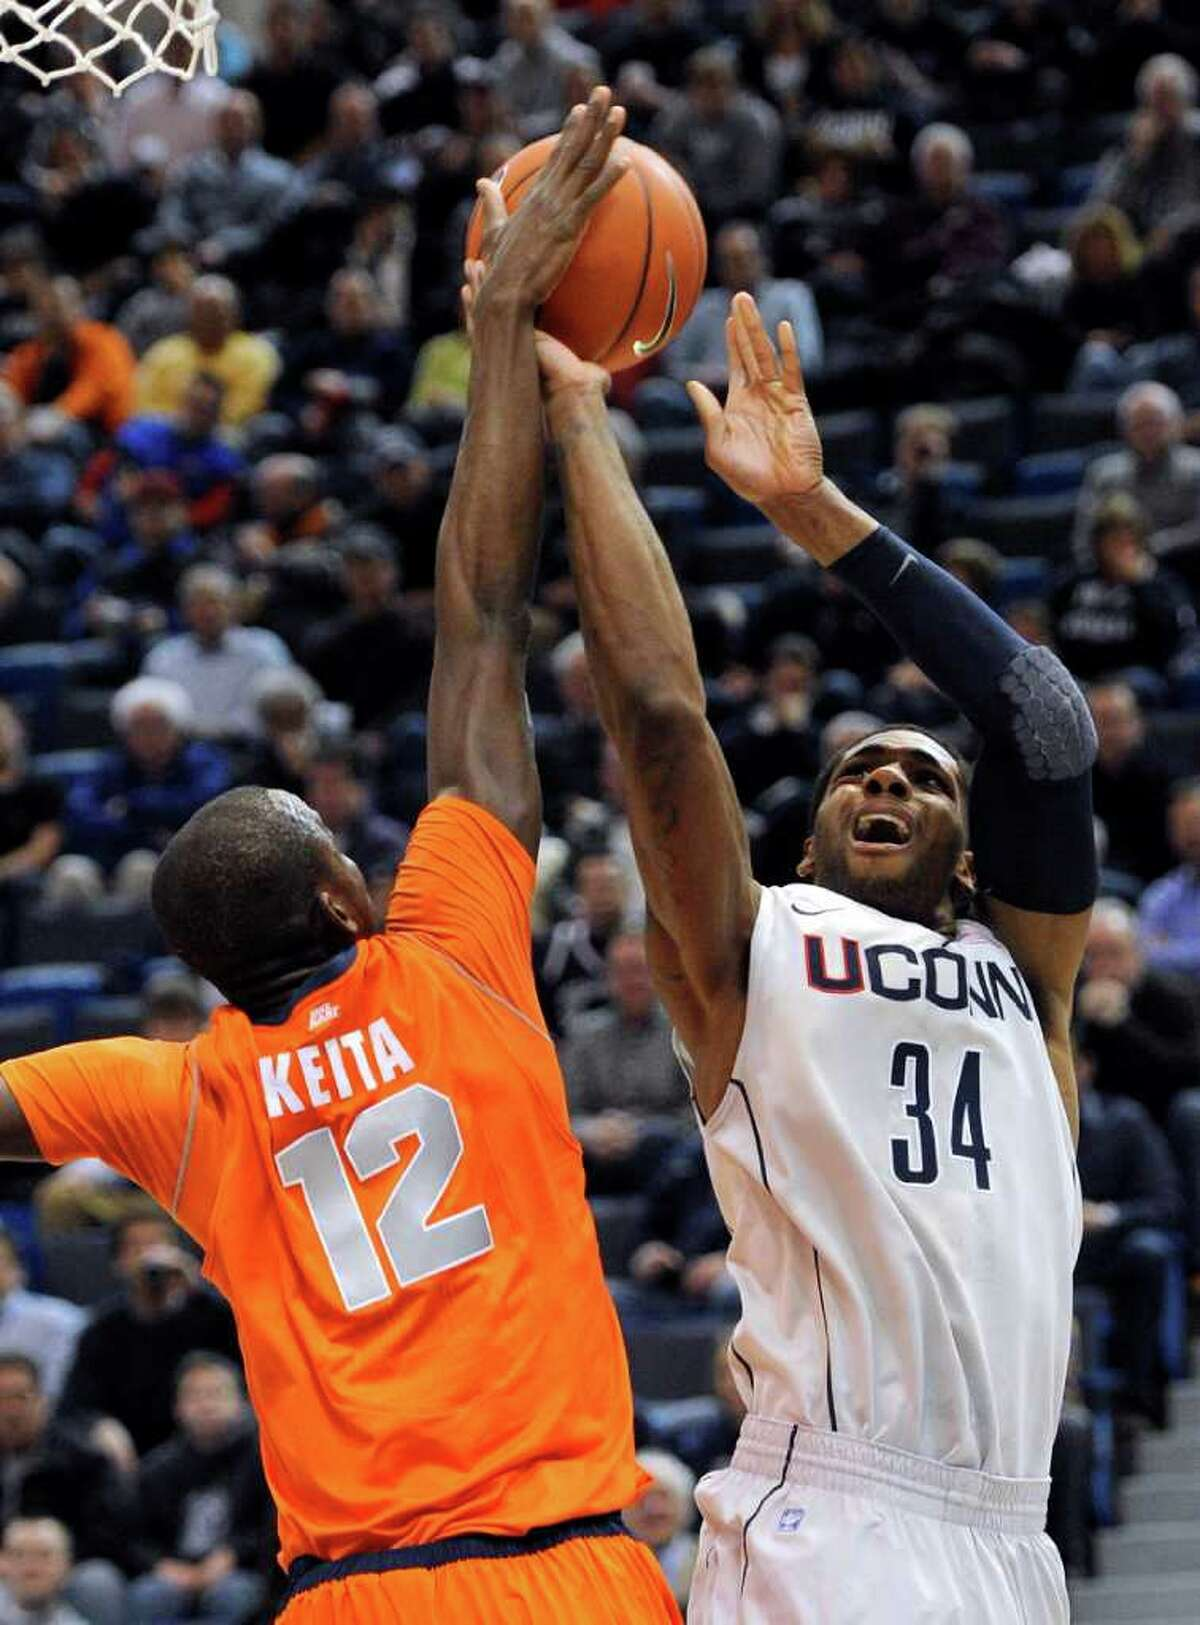 Syracuse's Baye Moussa Keita (12) blocks a shot attempt by Connecticut's Alex Oriakhi during the first half of an NCAA college basketball game in Hartford, Conn., Wednesday, Feb. 2, 2011. (AP Photo/Jessica Hill)